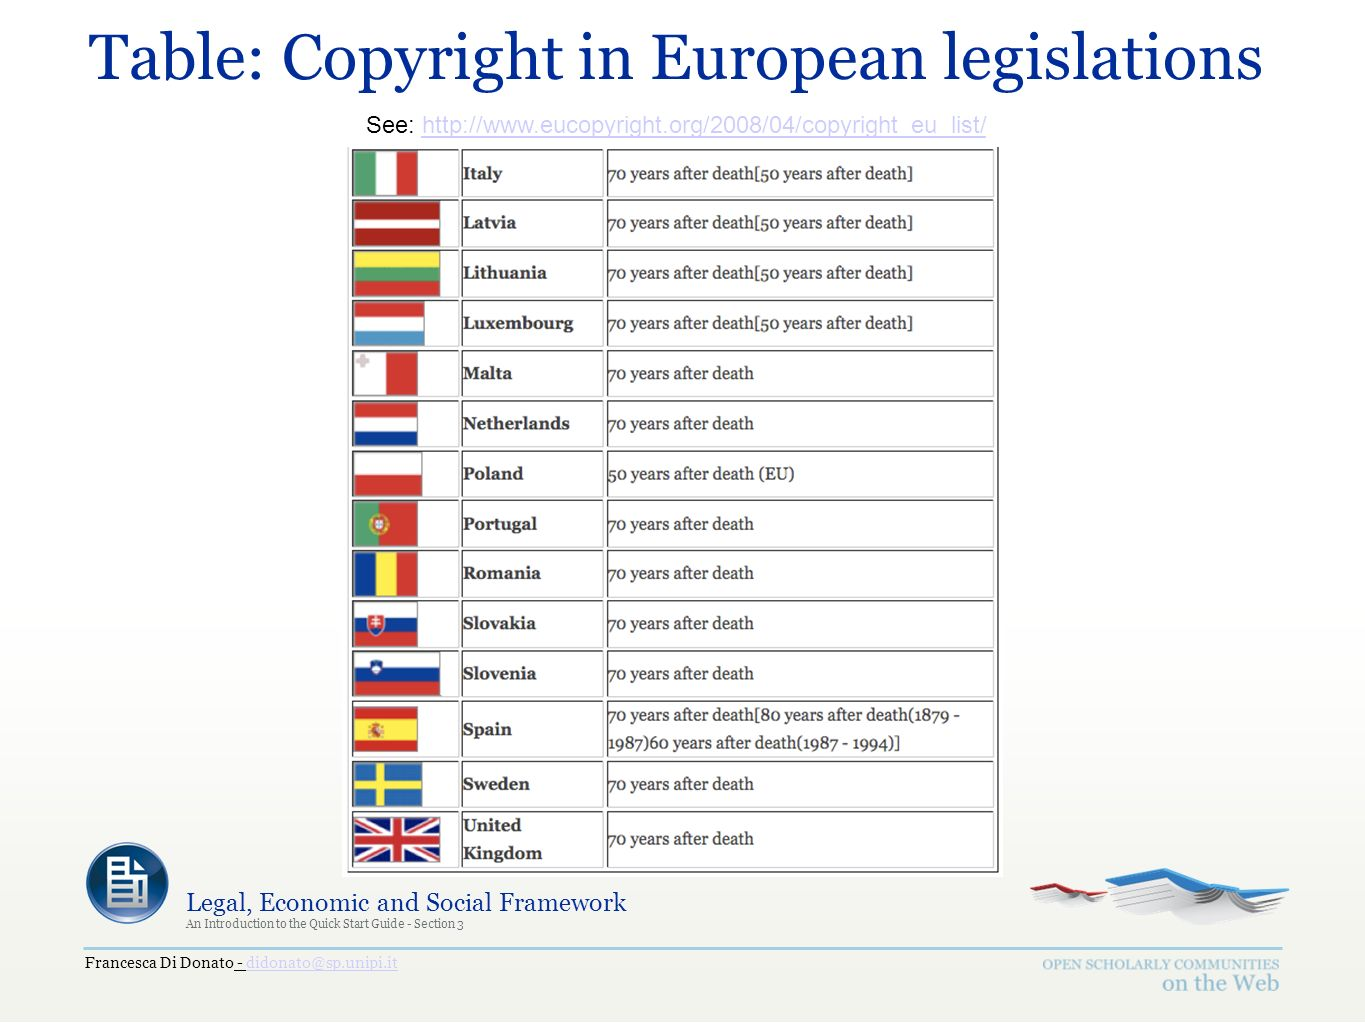 Francesca Di Donato - didonato@sp.unipi.itdidonato@sp.unipi.it Legal, Economic and Social Framework An Introduction to the Quick Start Guide - Section 3 Table: Copyright in European legislations See: http://www.eucopyright.org/2008/04/copyright_eu_list/http://www.eucopyright.org/2008/04/copyright_eu_list/